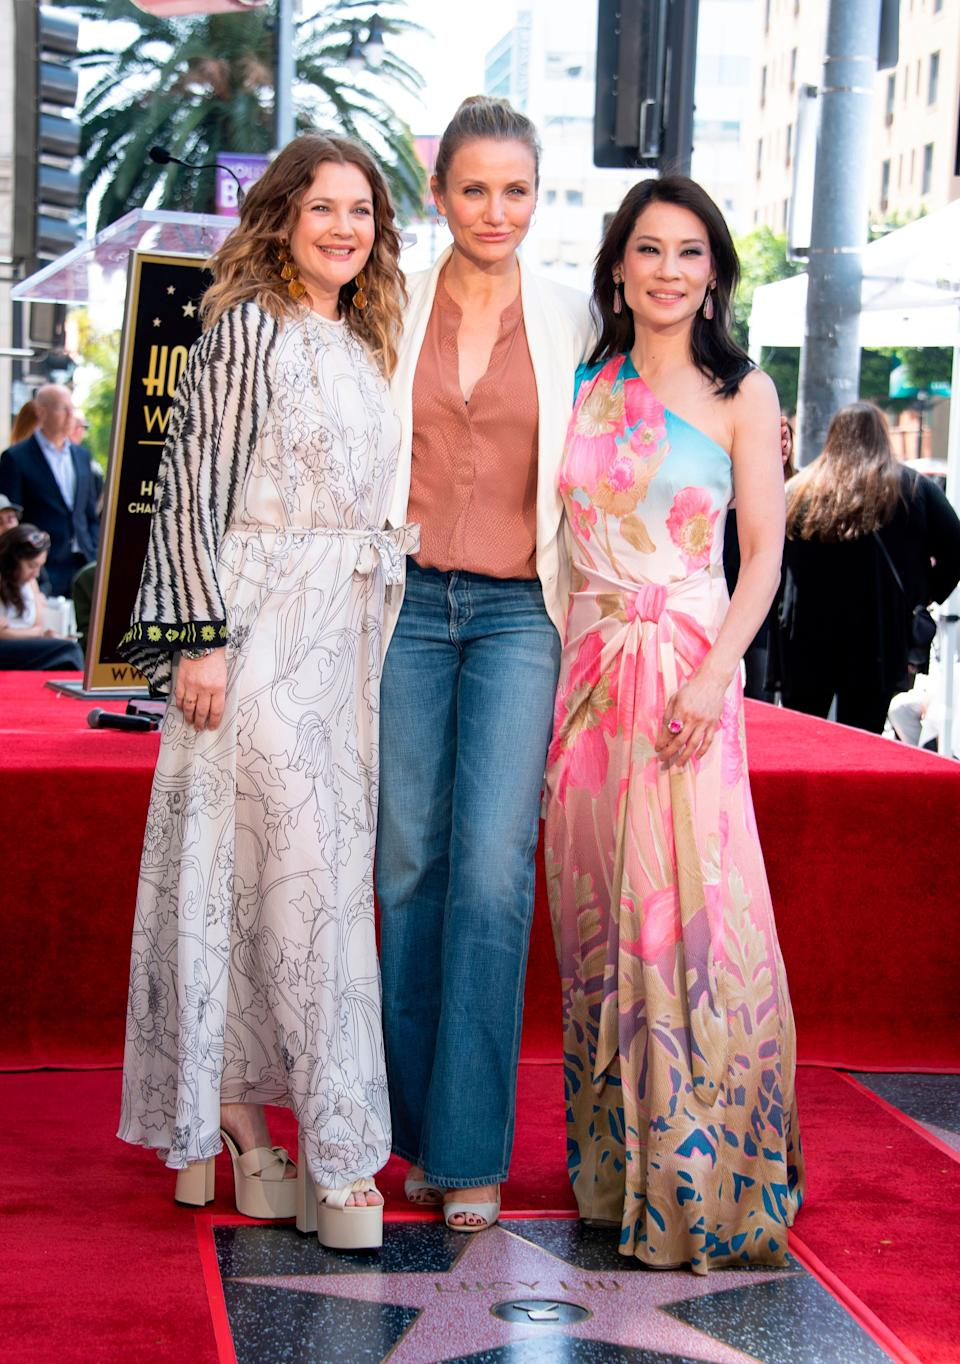 Drew Barrymore, Cameron Diaz and Lucy Liu stand on the star during Liu's Walk of Fame ceremony in Hollywood. (Photo: VALERIE MACON via Getty Images)